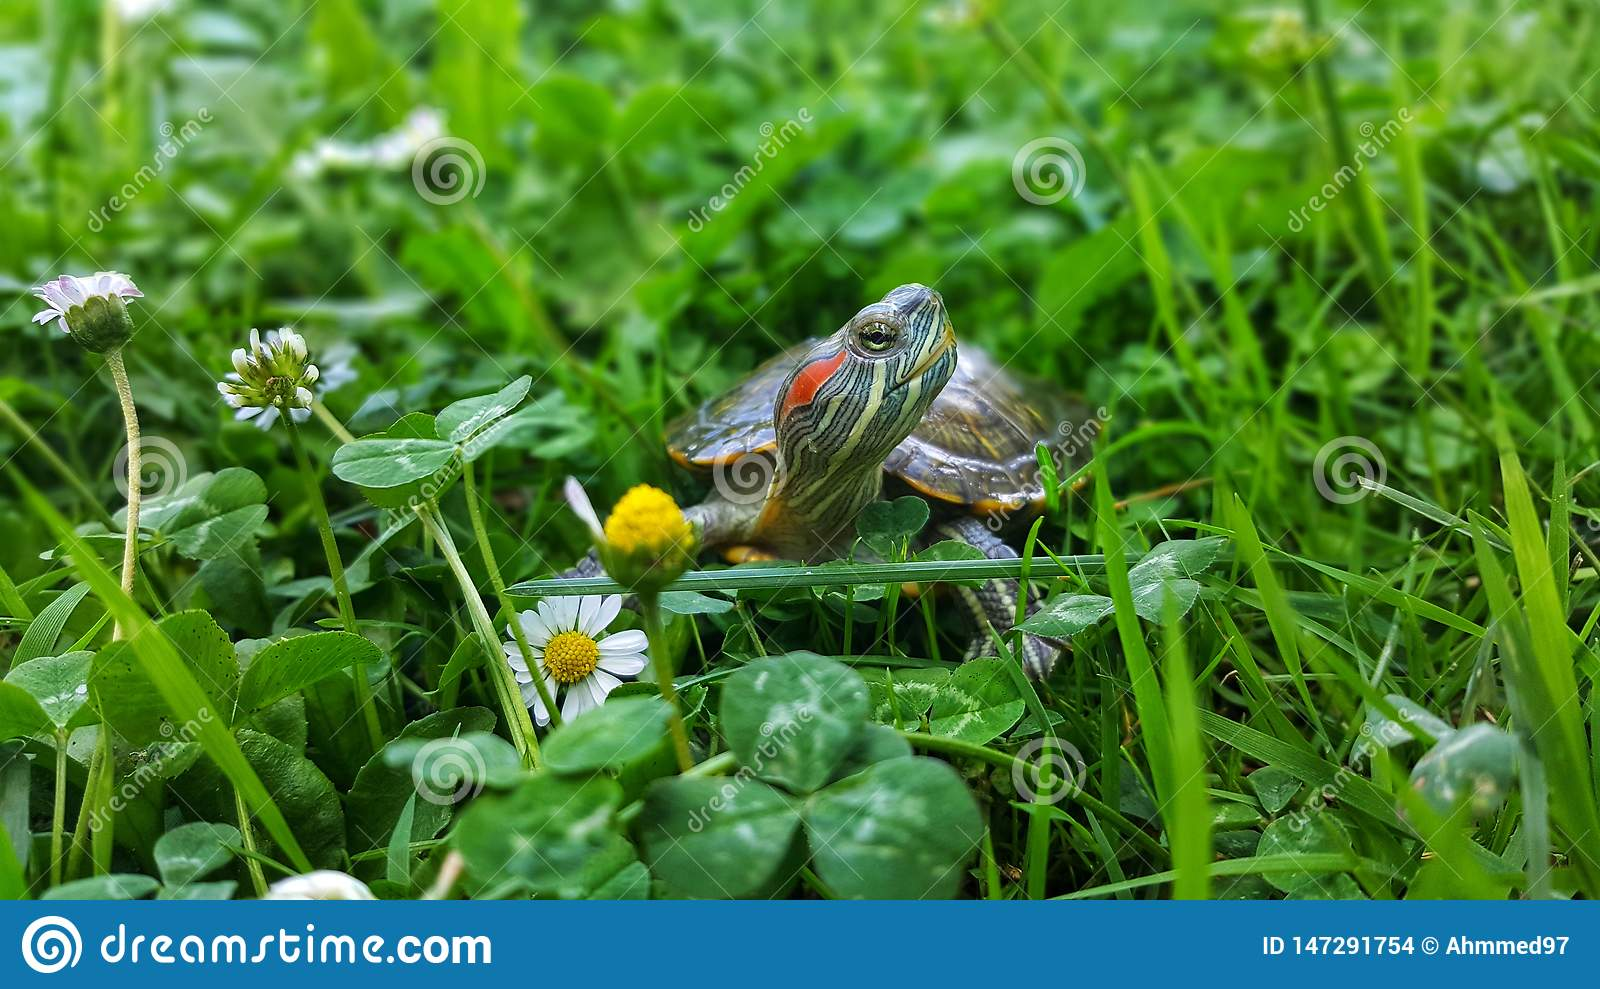 Turtles in the grass